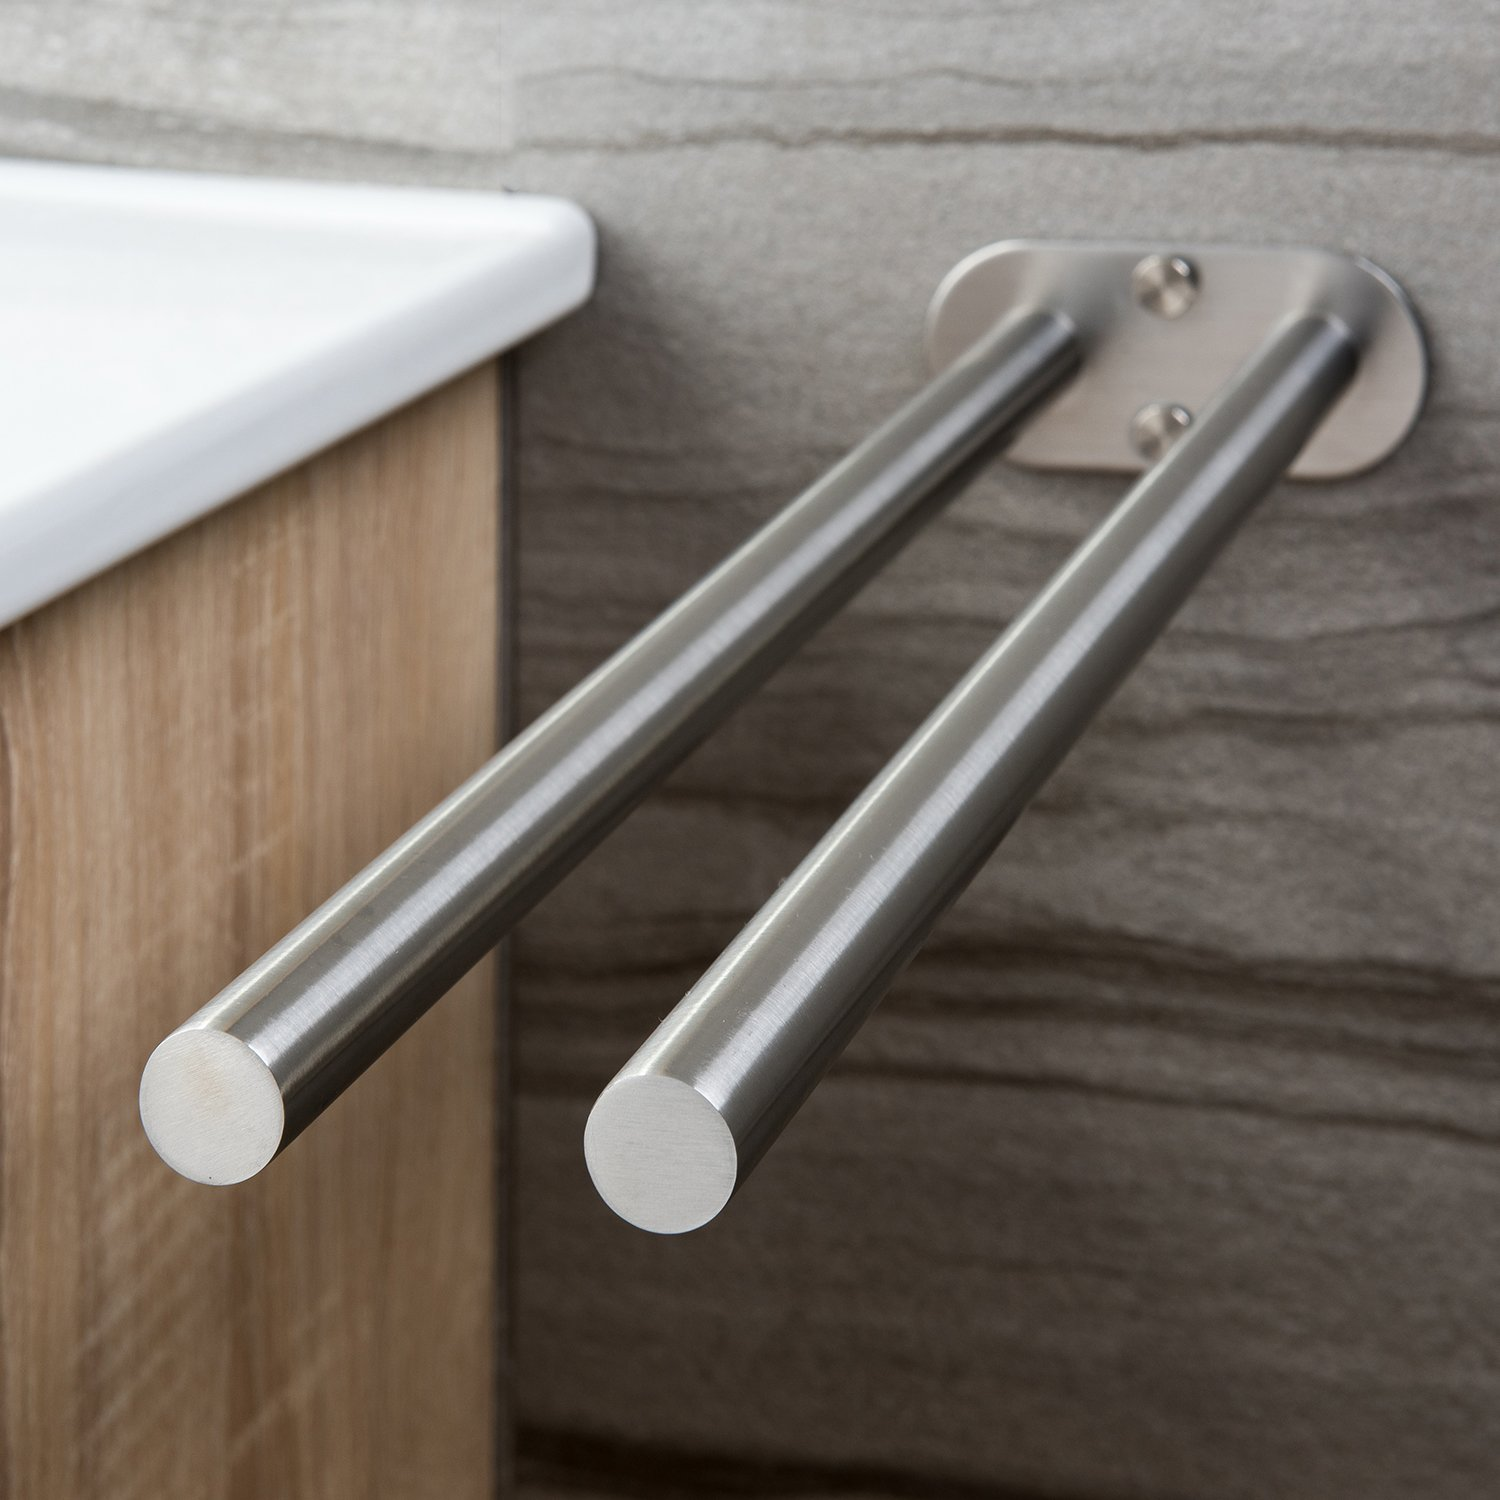 Towel Holder Wall Mounted - Hand Towel Bar Bathroom Kitchen Brushed Stainless Steel 15.75 inches